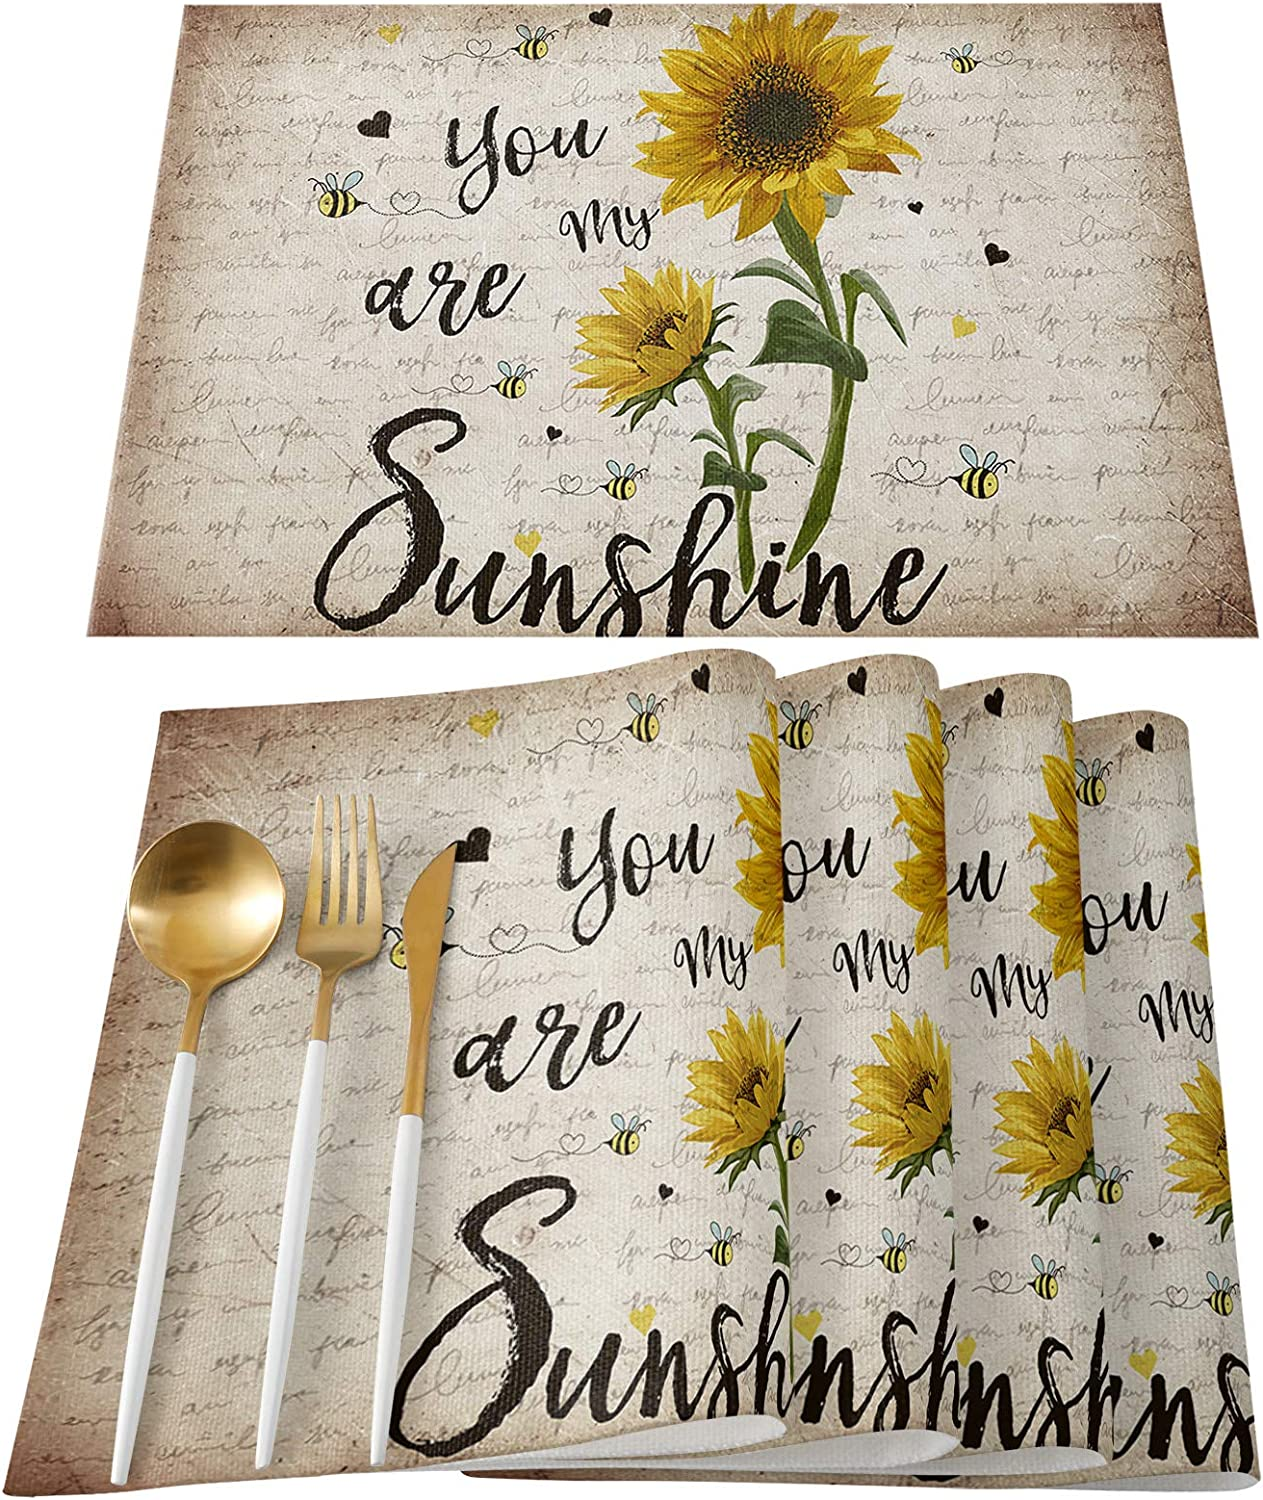 Artwork Store Sunflower Placemats Set of 6, Cotton Linen Heat Resistant Table Mats Non-Slip Washable Vintage Sunflower Bees You are My Sunshine Placemat for Holiday Banquet Dining Table Kitchen Decor